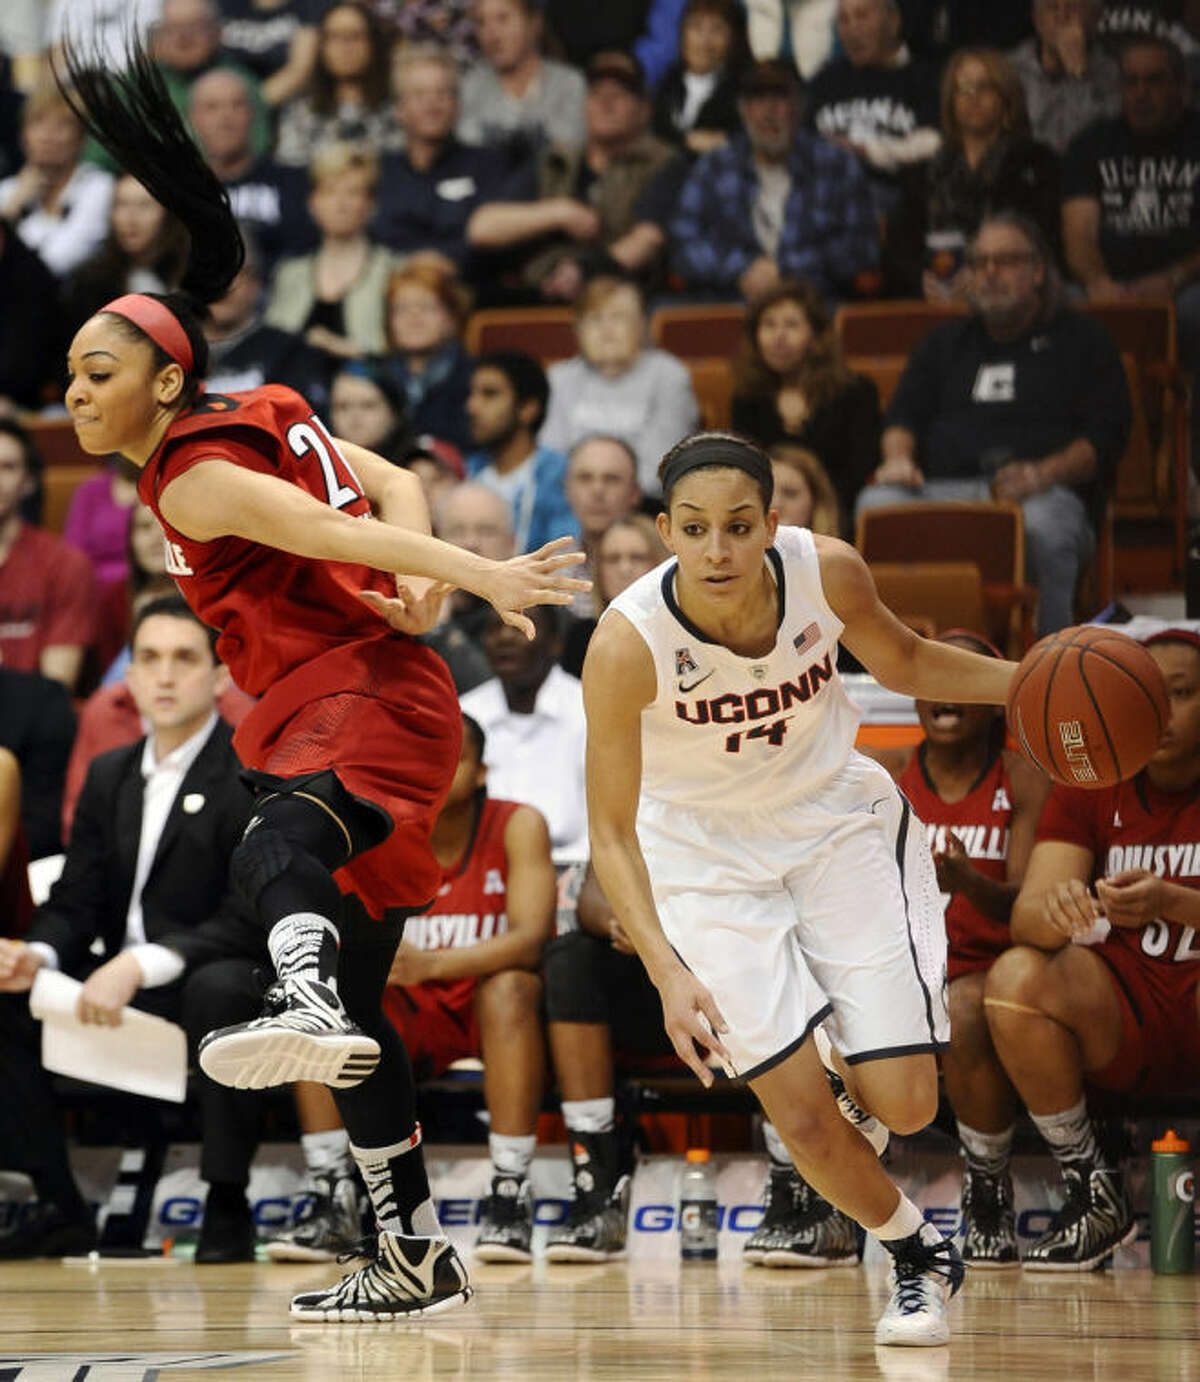 Connecticut's Bria Hartley, right, drives past Louisville's Bria Smith, left, during the first half of an NCAA college basketball game in the finals of the American Athletic Conference women's basketball tournament, Monday, March 10, 2014, in Uncasville, Conn. (AP Photo/Jessica Hill)